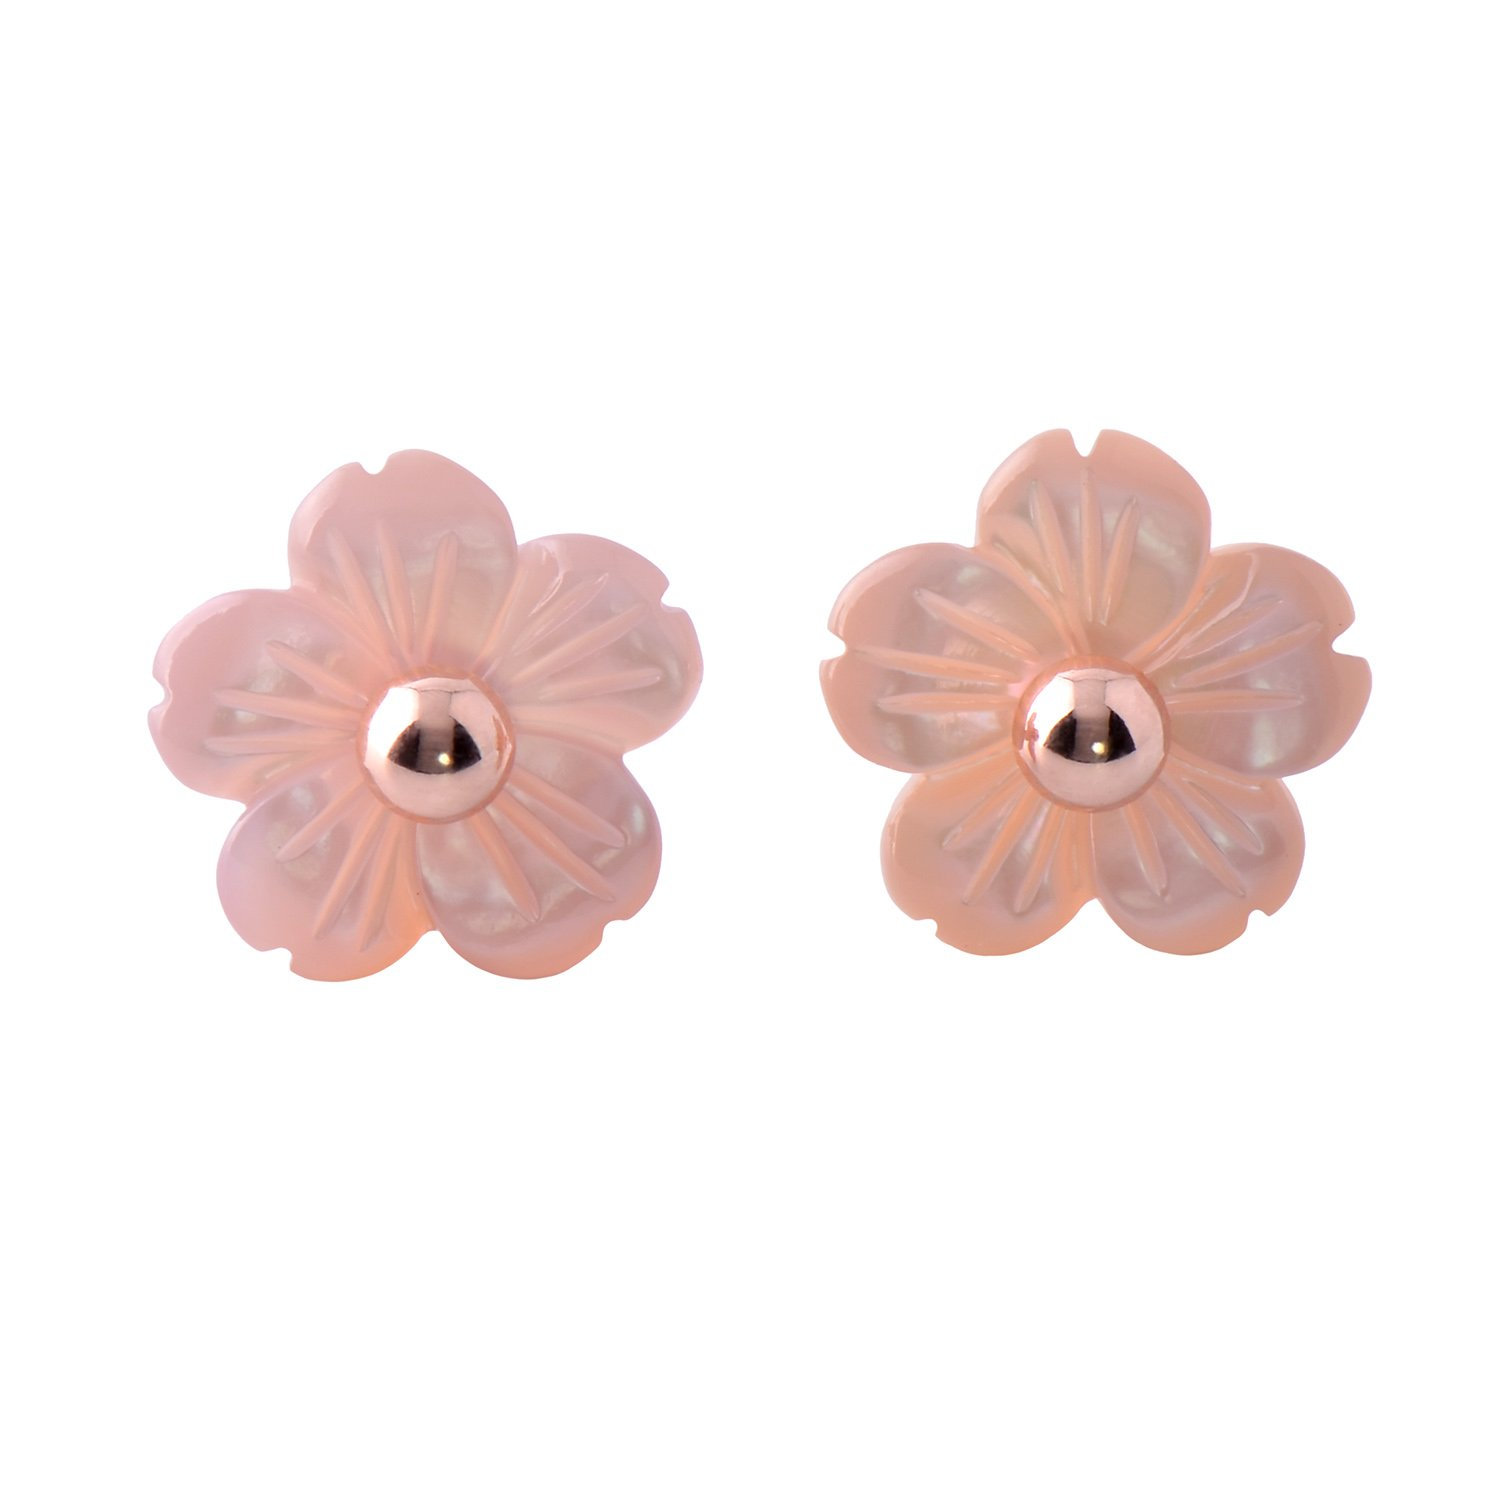 Paialco Mother of Pearl Flower Shape Earring Jackets Ball Rose Gold Tone 4MM